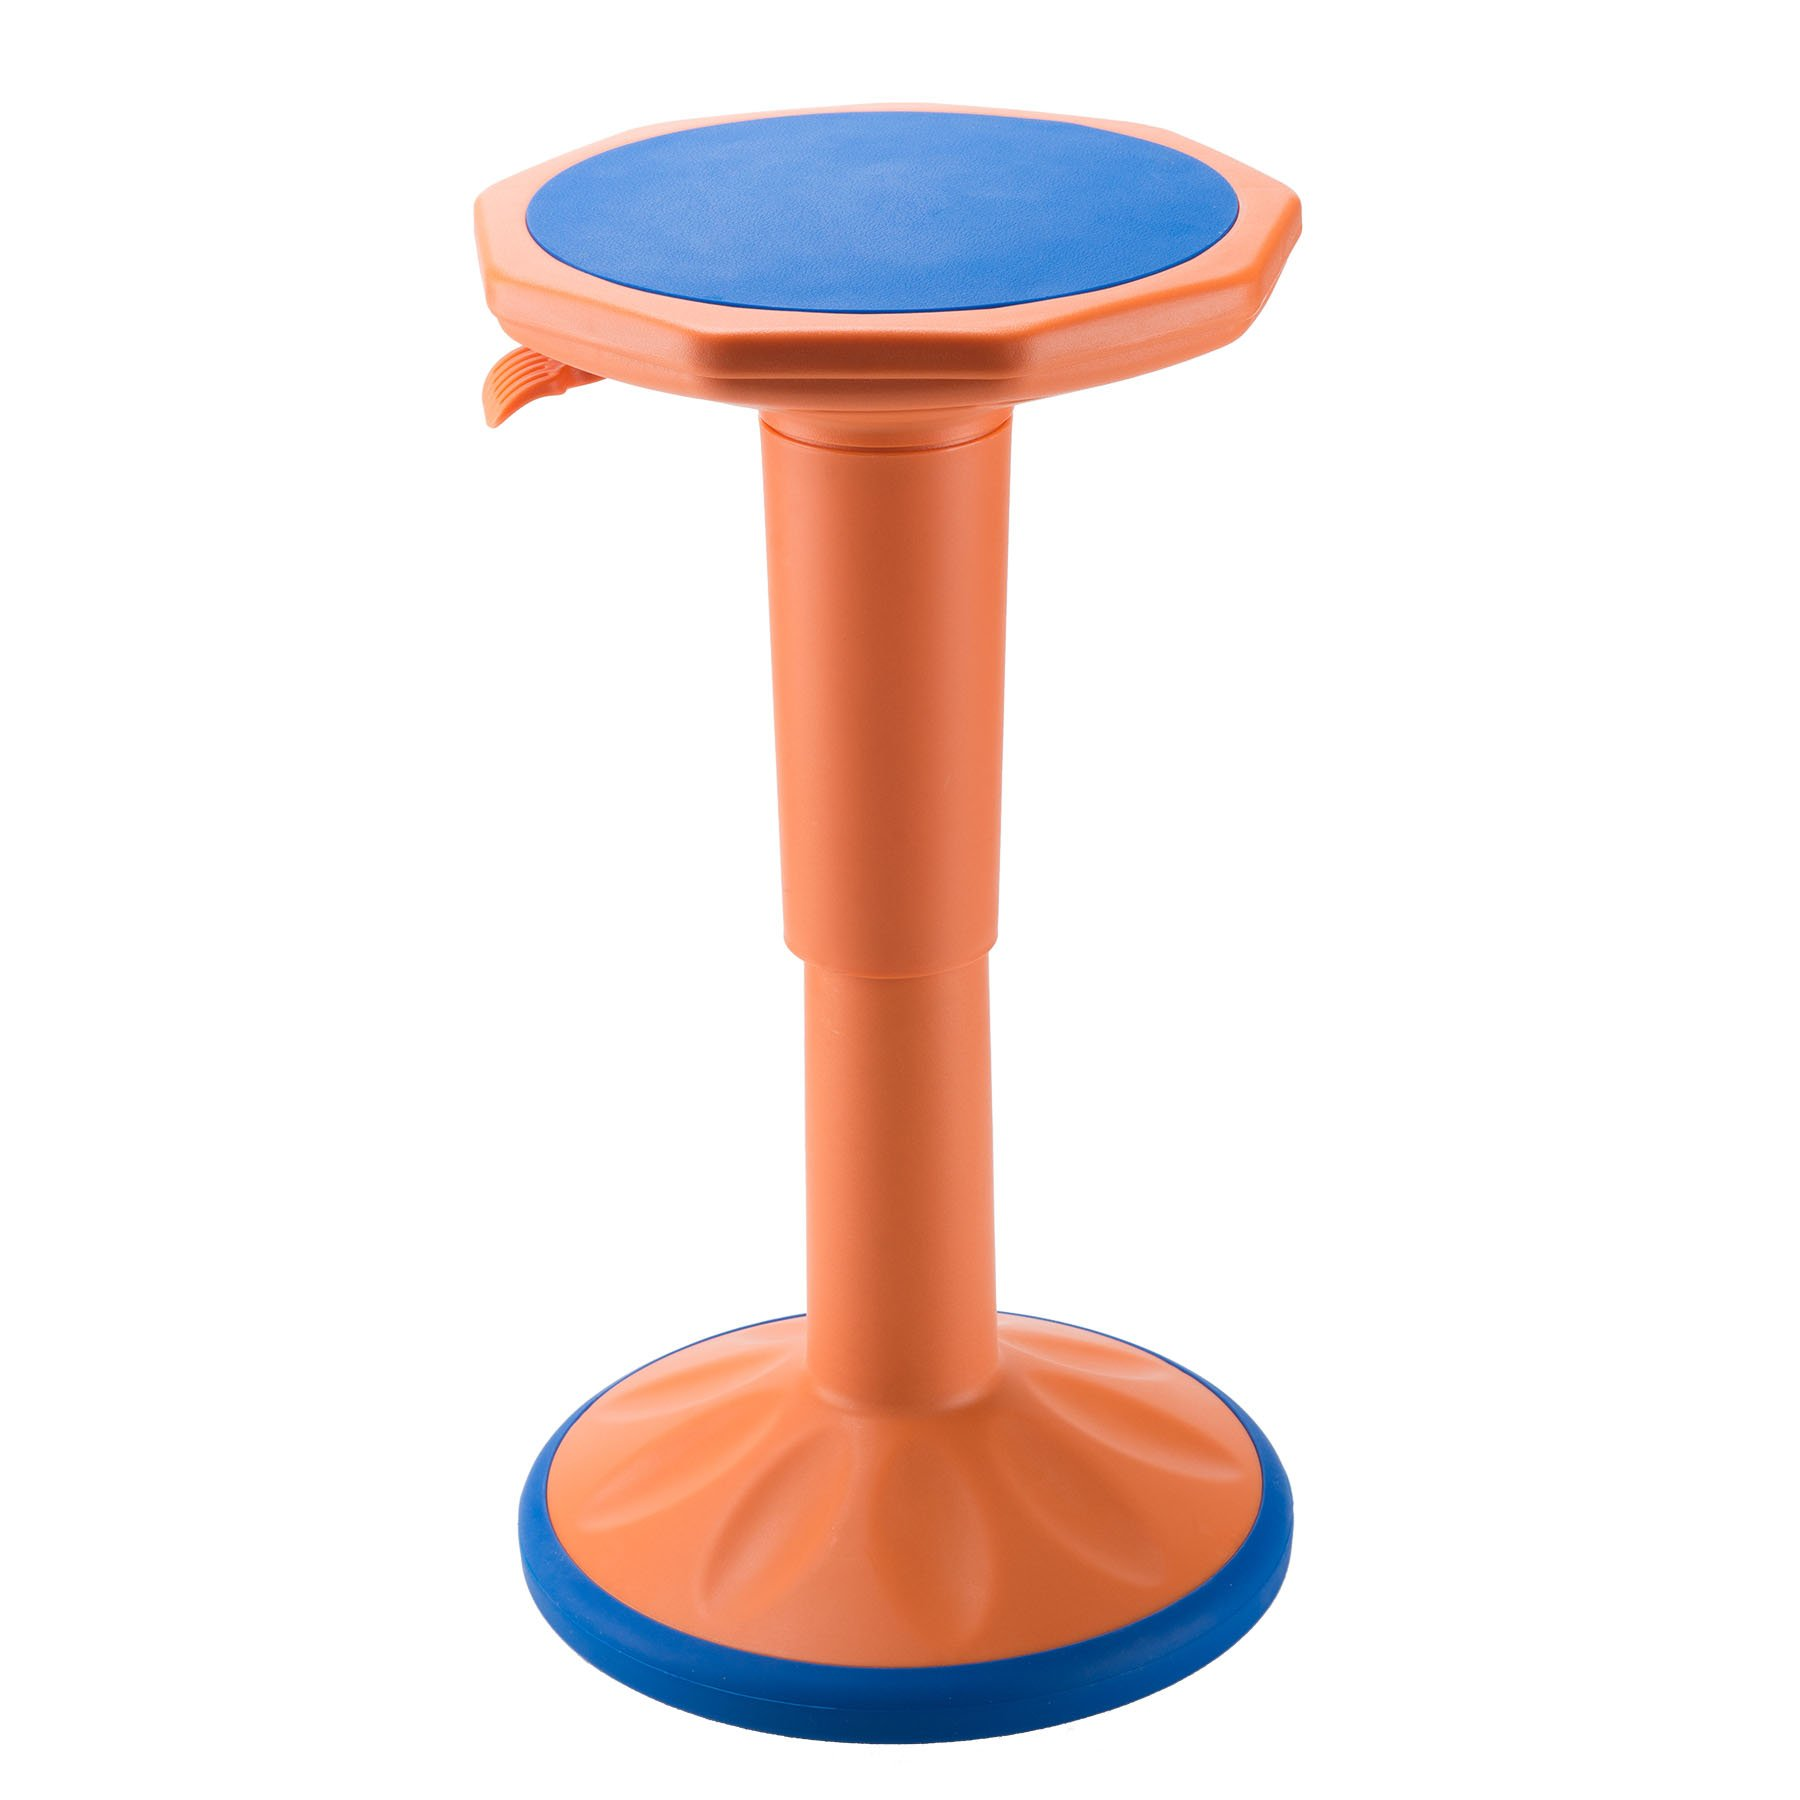 CO-Z Active Learning Stool, Sitting Balance Chair w/Adjustable Height for Office Stand Up Desk (Real Active - Orange)